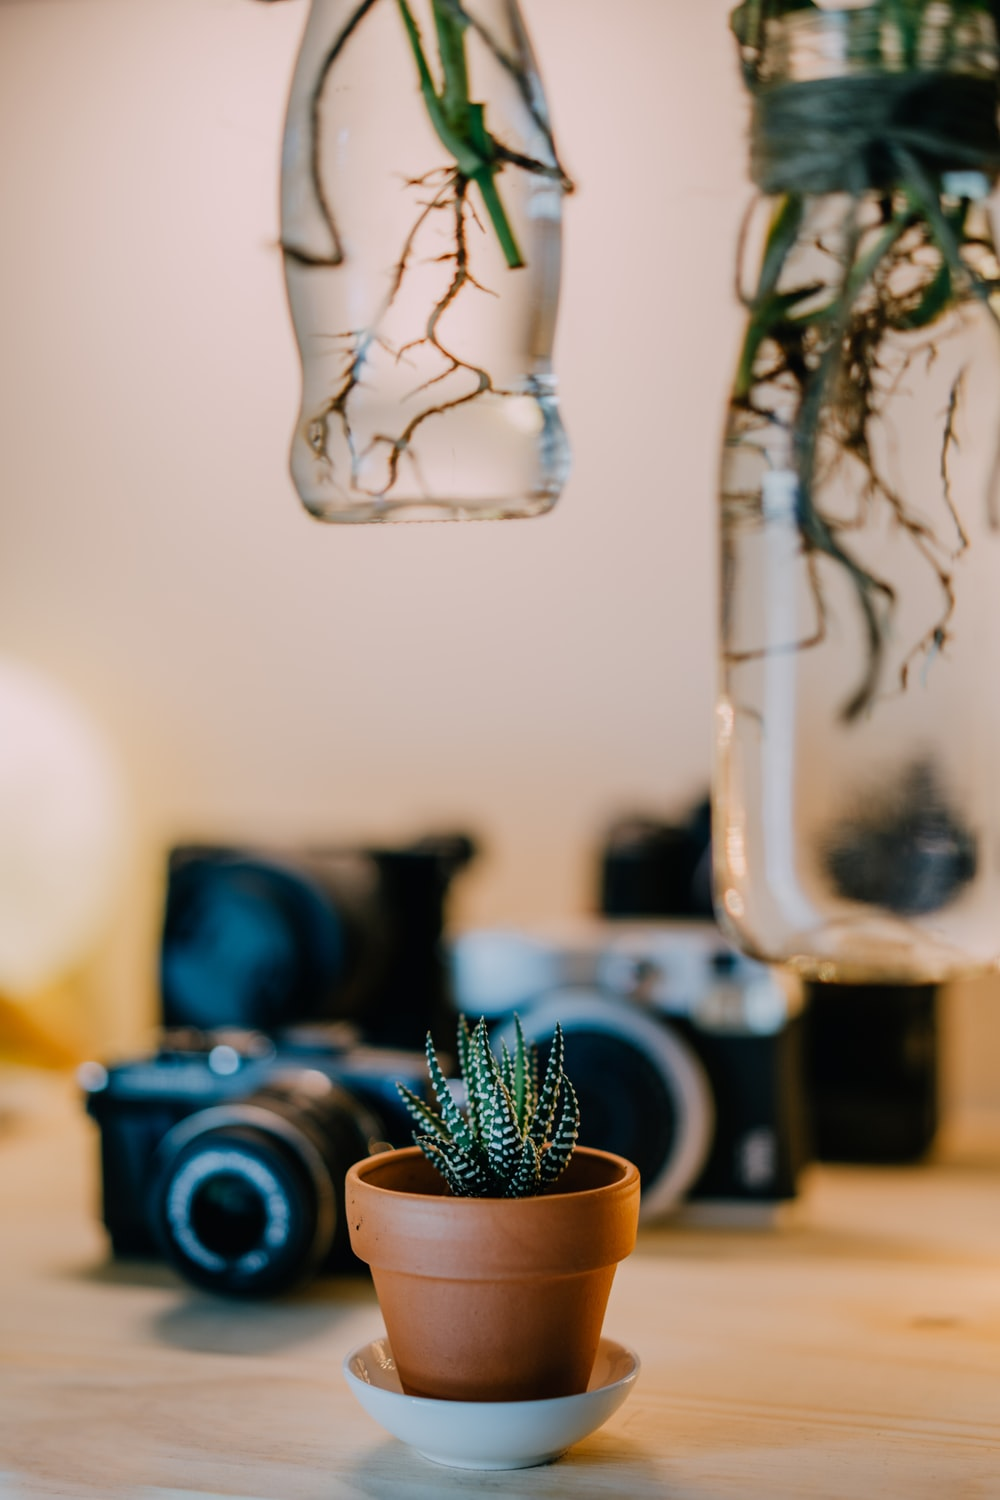 selective focus photography of green plant beside cameras